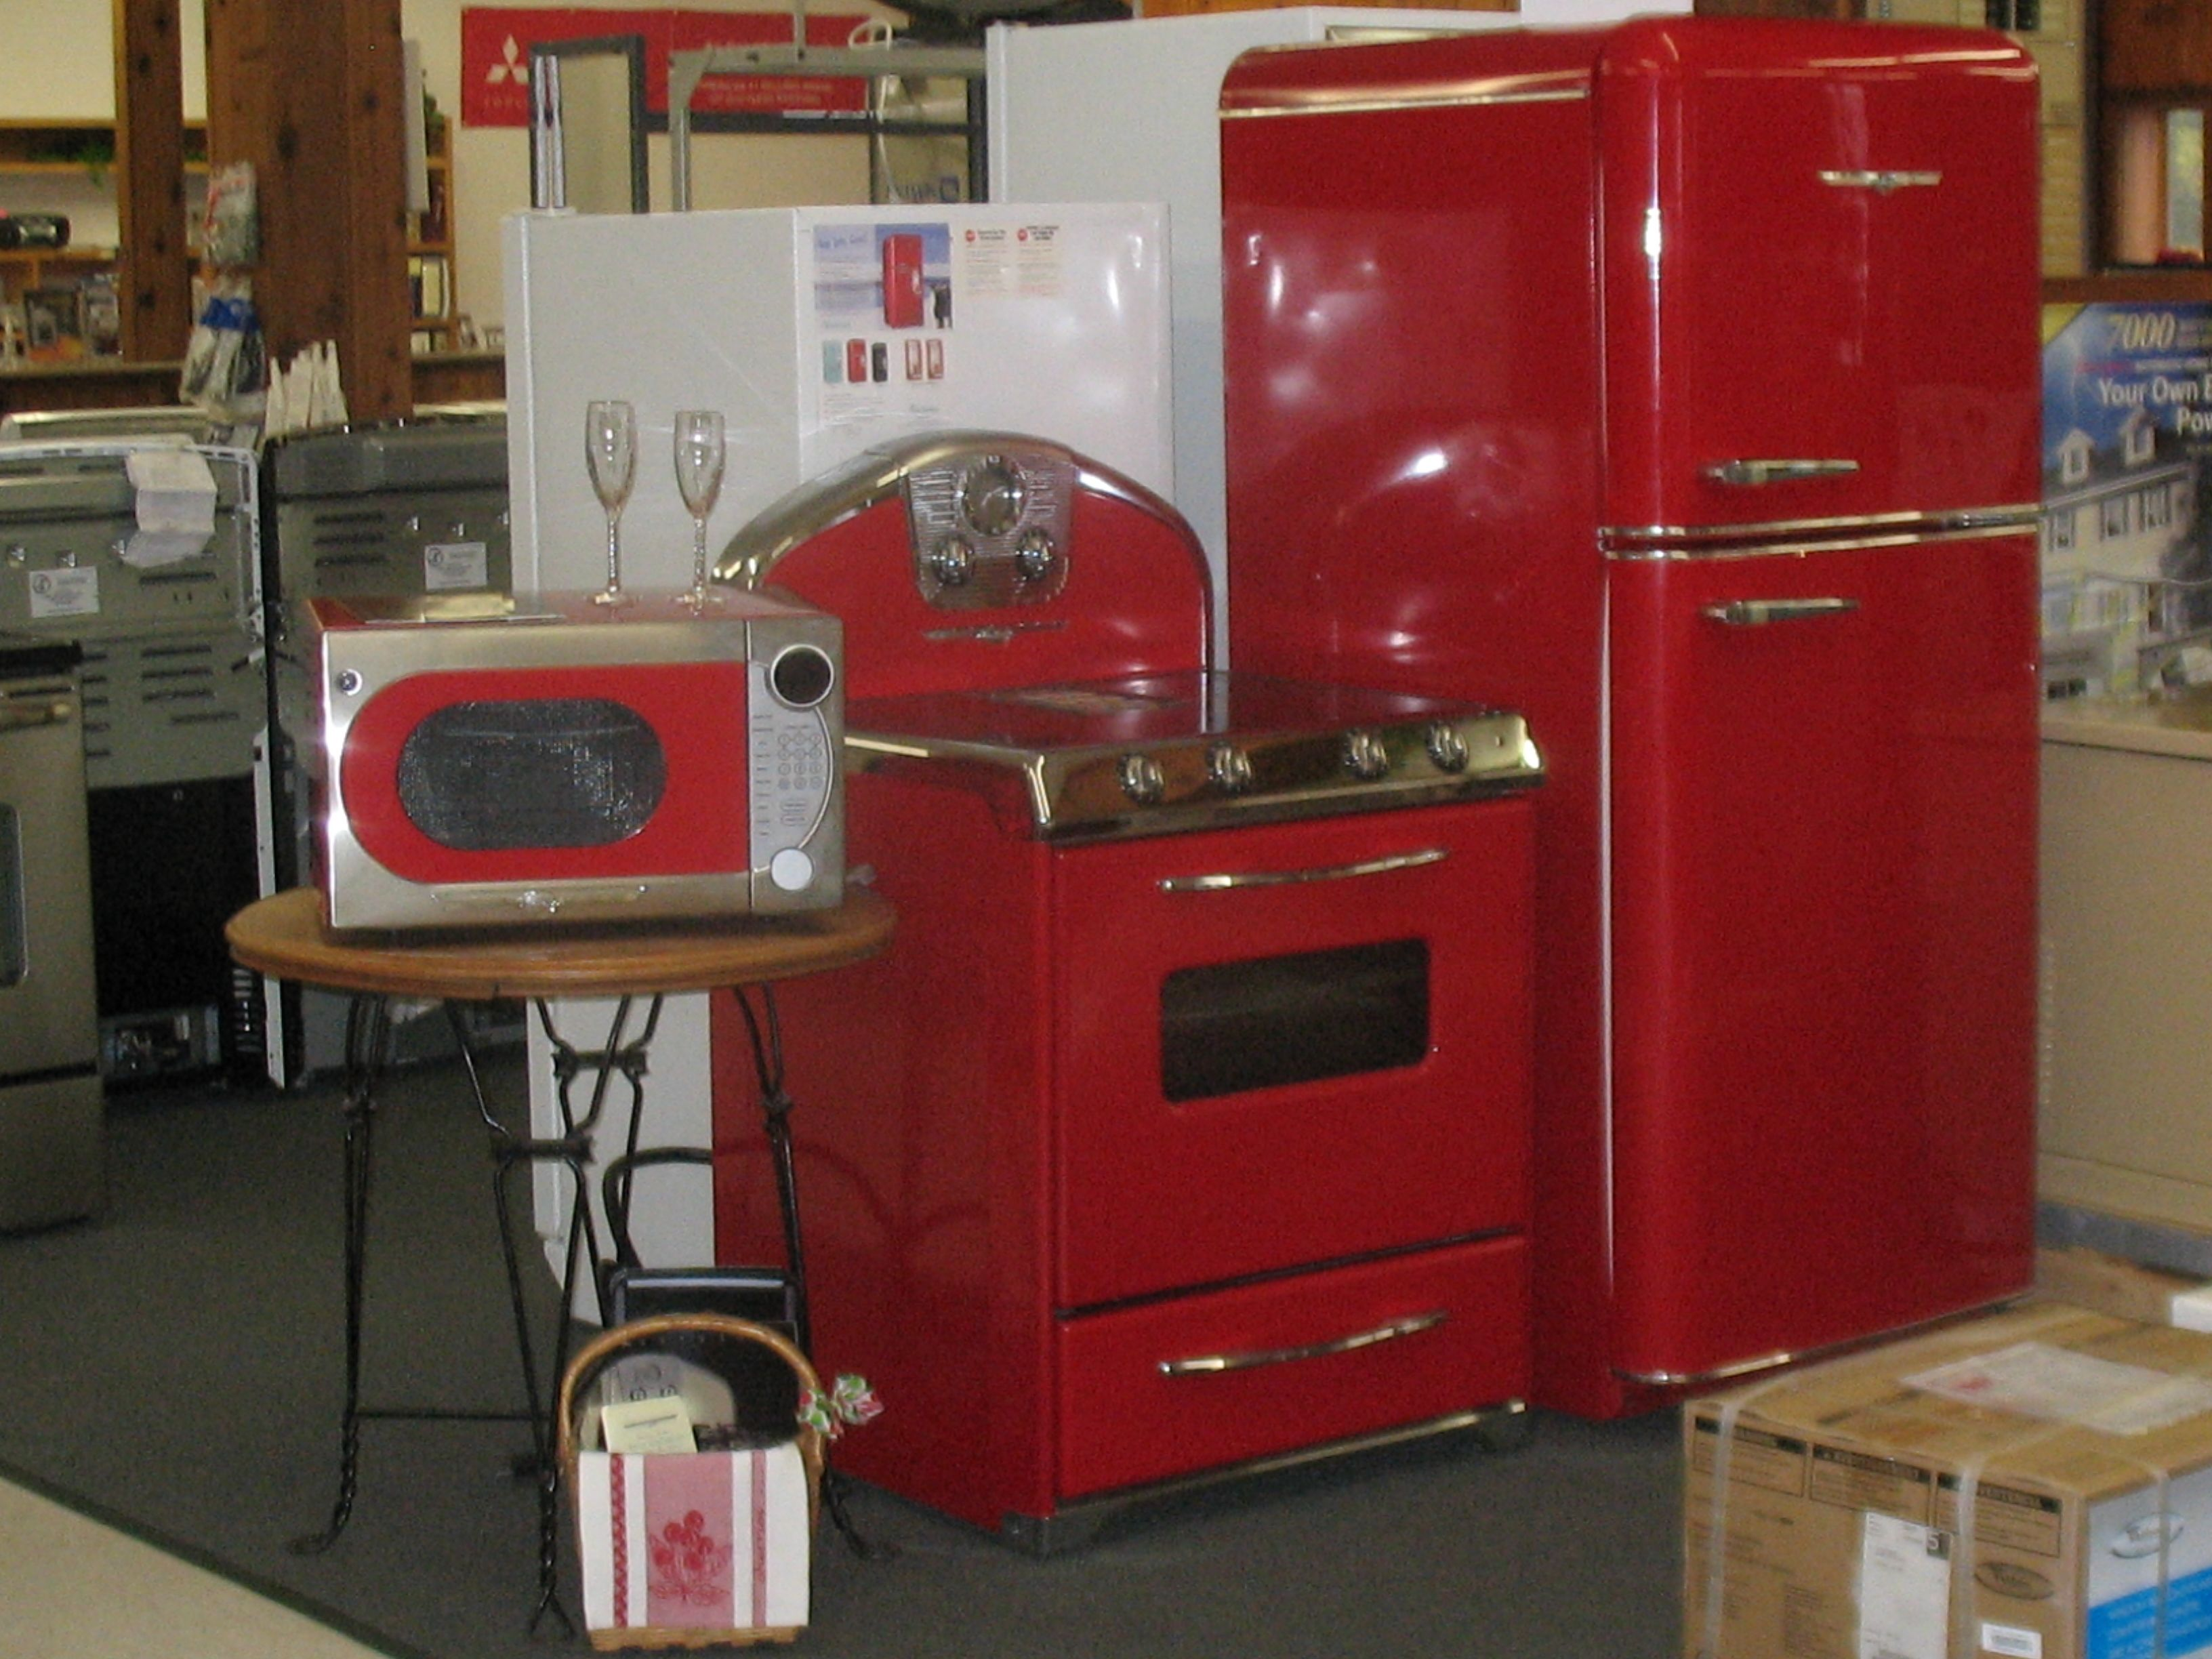 Retro Kitchen Appliance Retro 1950s Styled Kitchen Appliances With All The Modern